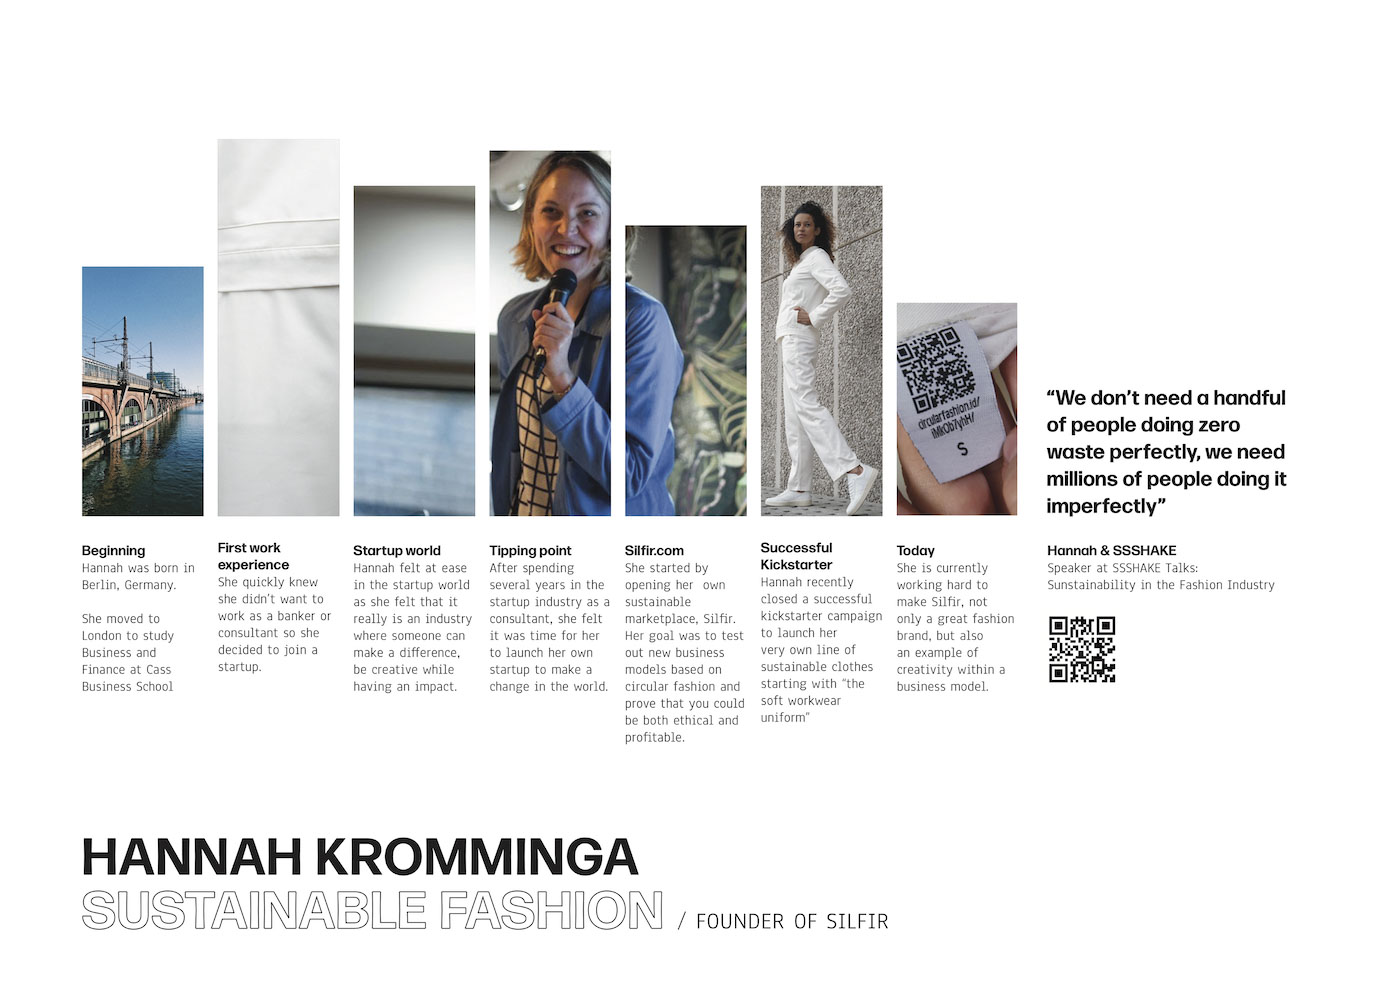 Poster about Hannah Kromminga, Founder of Silfir and speaker at SSSHAKE Talks, at the UCAS Create Your Future 2019, at ExCel London